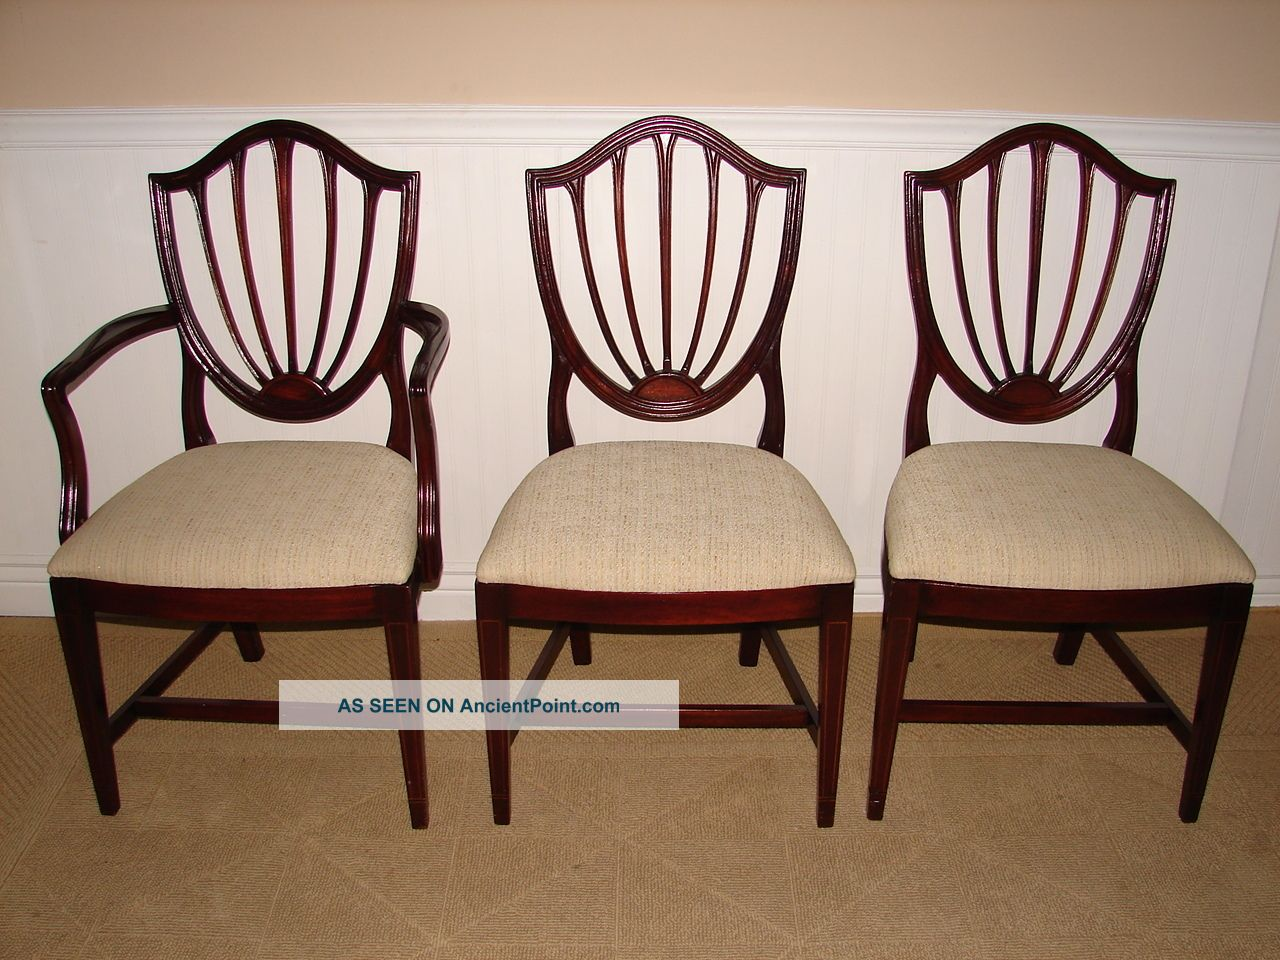 Top Ethan Allen Mahogany Dining Room Chairs 1280 x 960 · 200 kB · jpeg